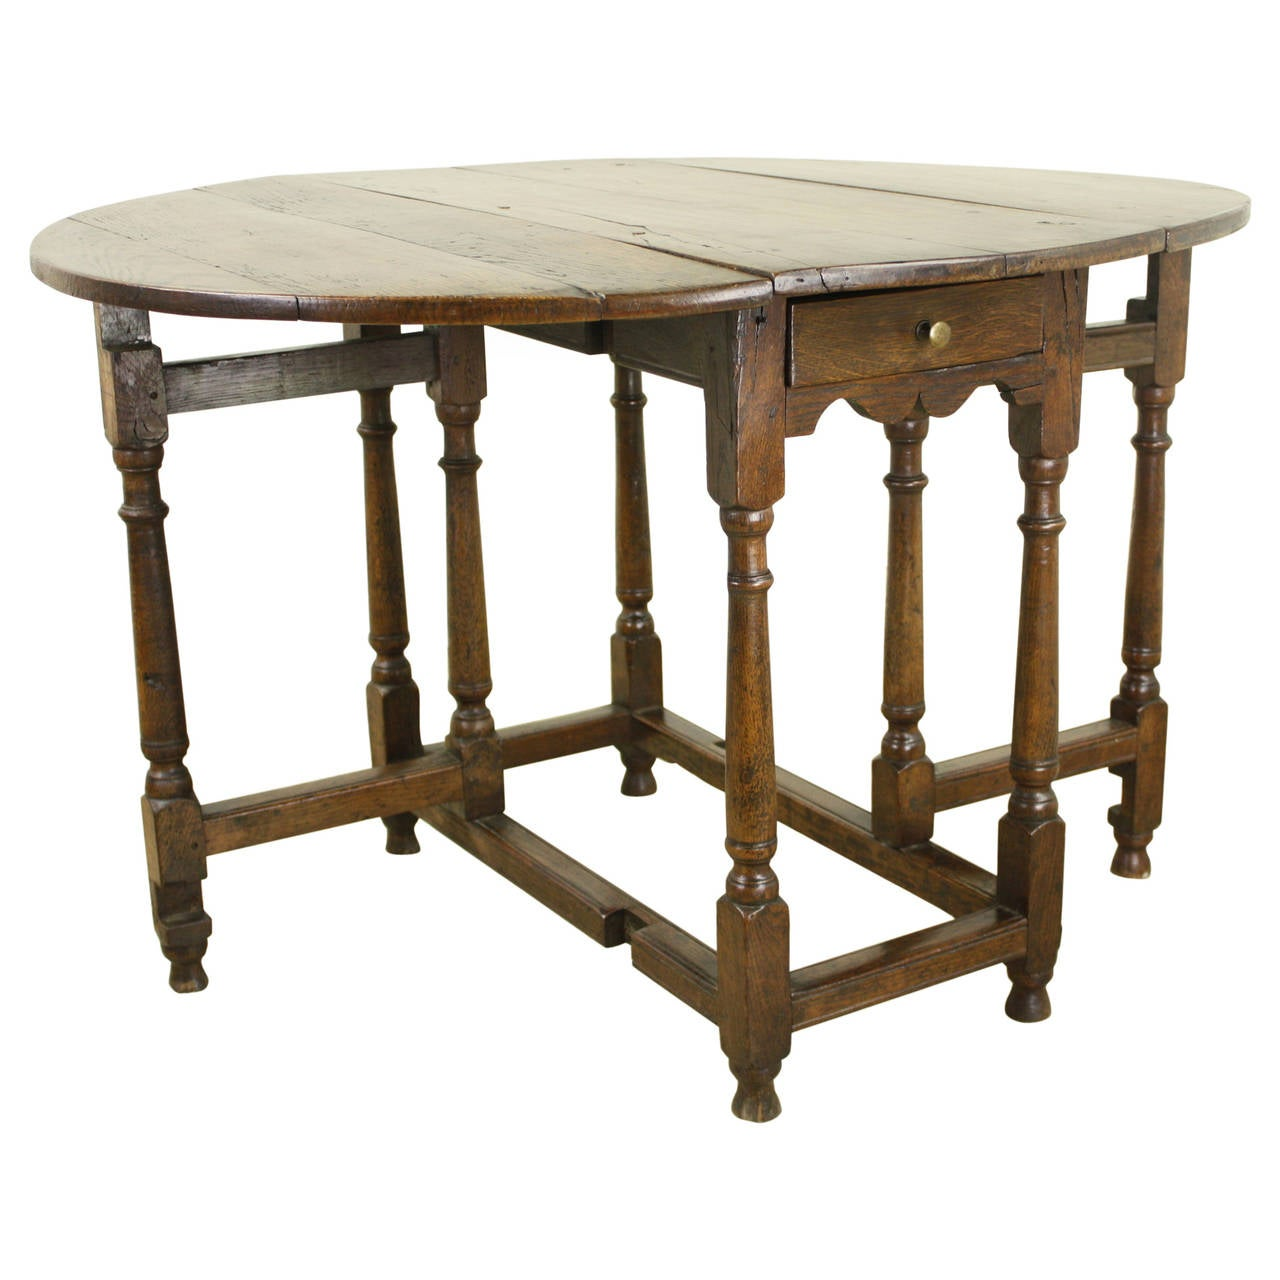 Period Welsh Oak Drop Leaf Or Gateleg Table 1